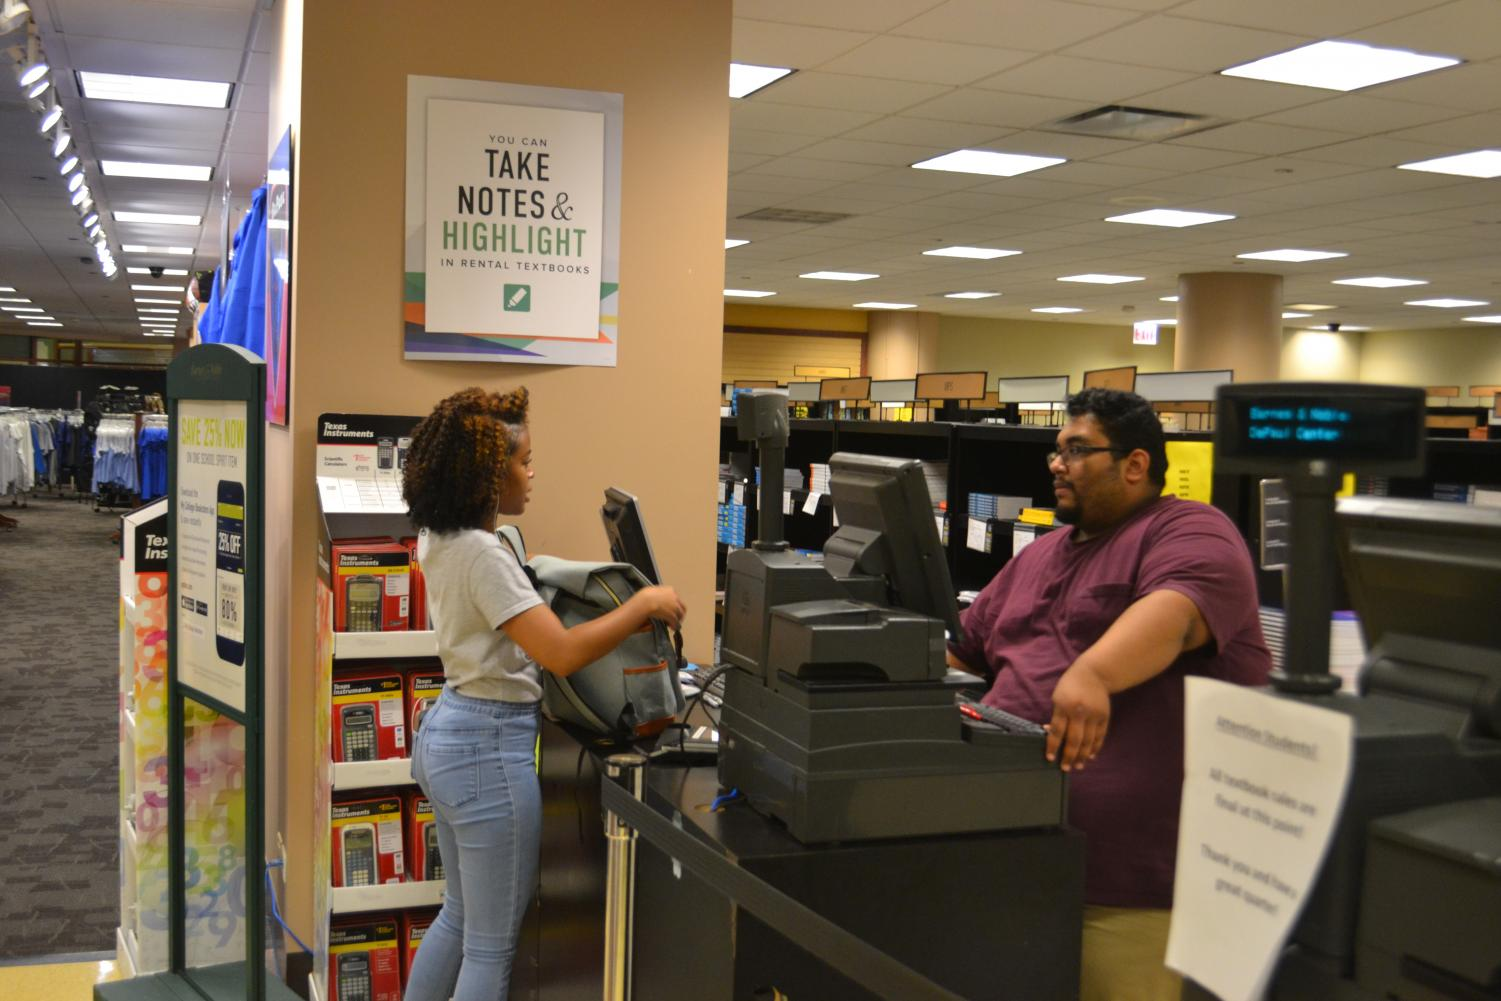 A DePaul student conducts a transaction at DePaul's Loop Campus bookstore. Many students have advocated for open source textbooks due to pricing.